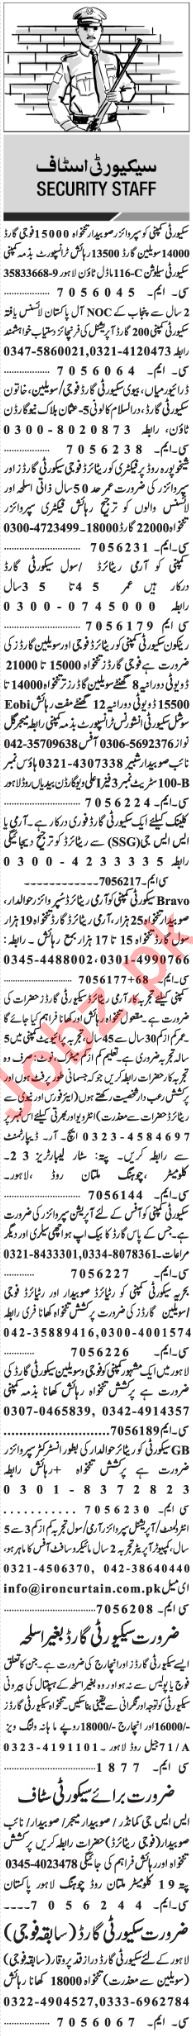 Jang Sunday Classified Ads 25 Nov 2018 for Security Staff